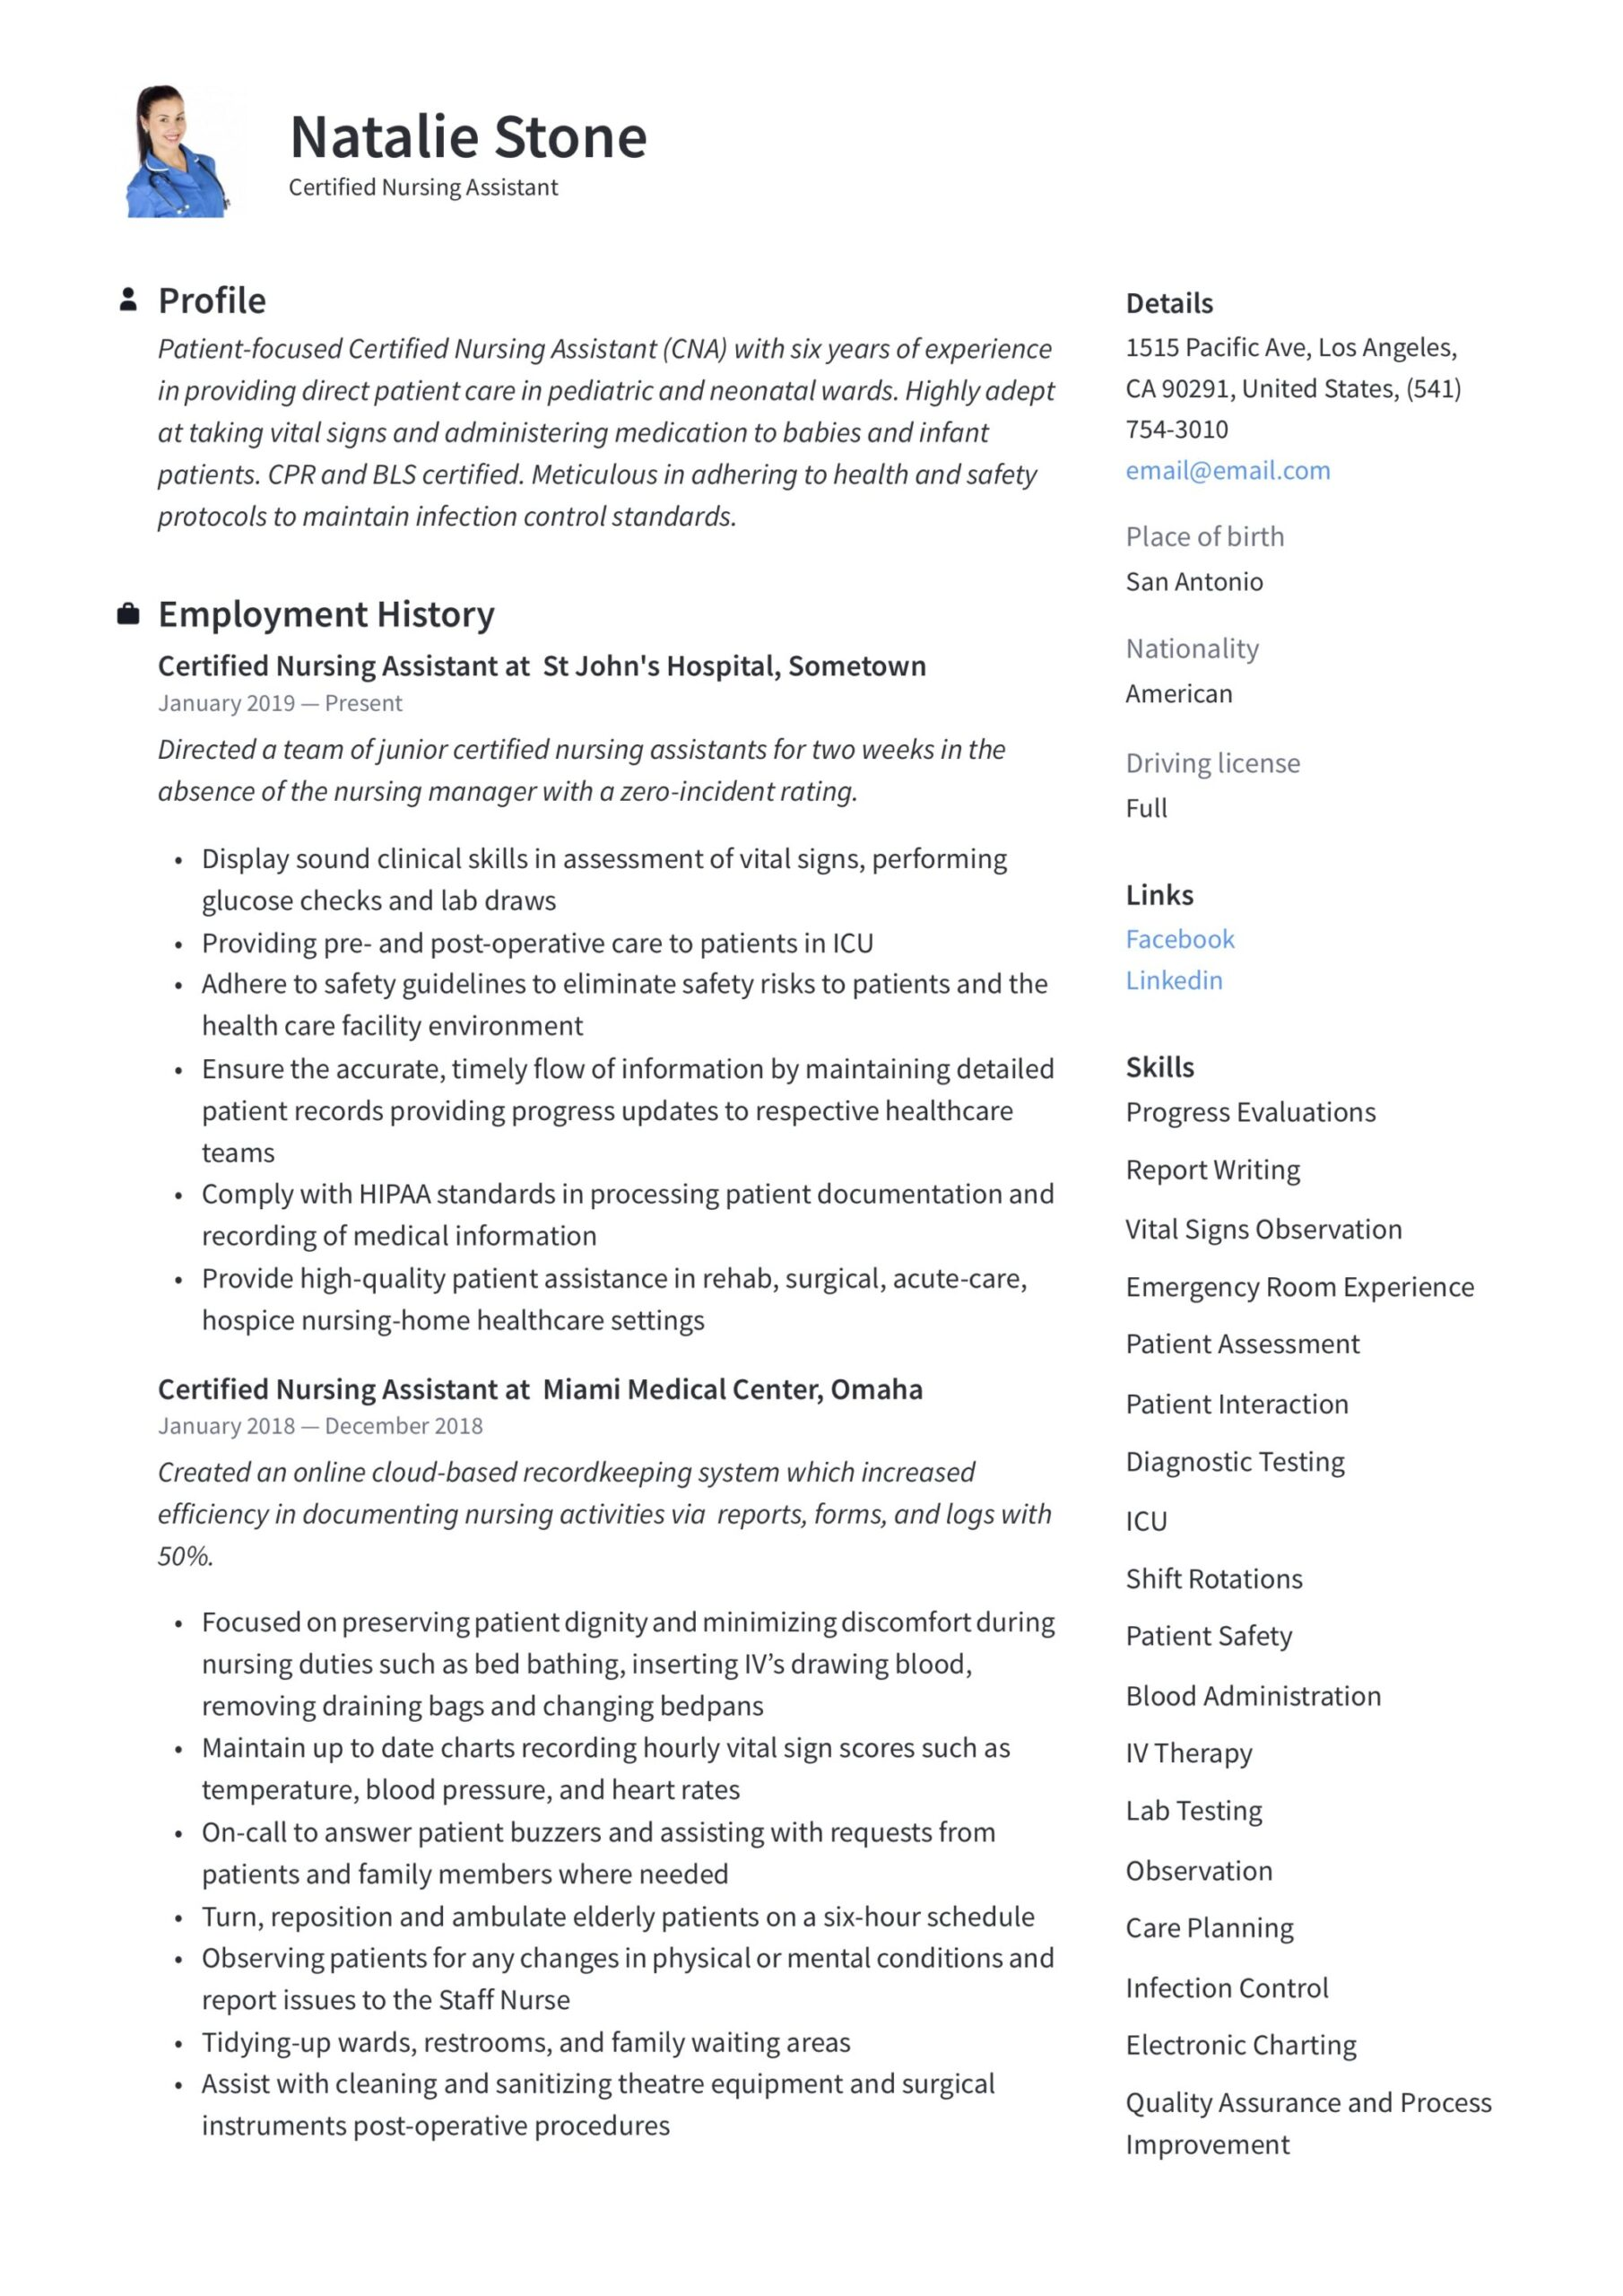 certified nursing assistant resume writing guide templates cna examples tcs upload Resume Cna Resume Examples 2020